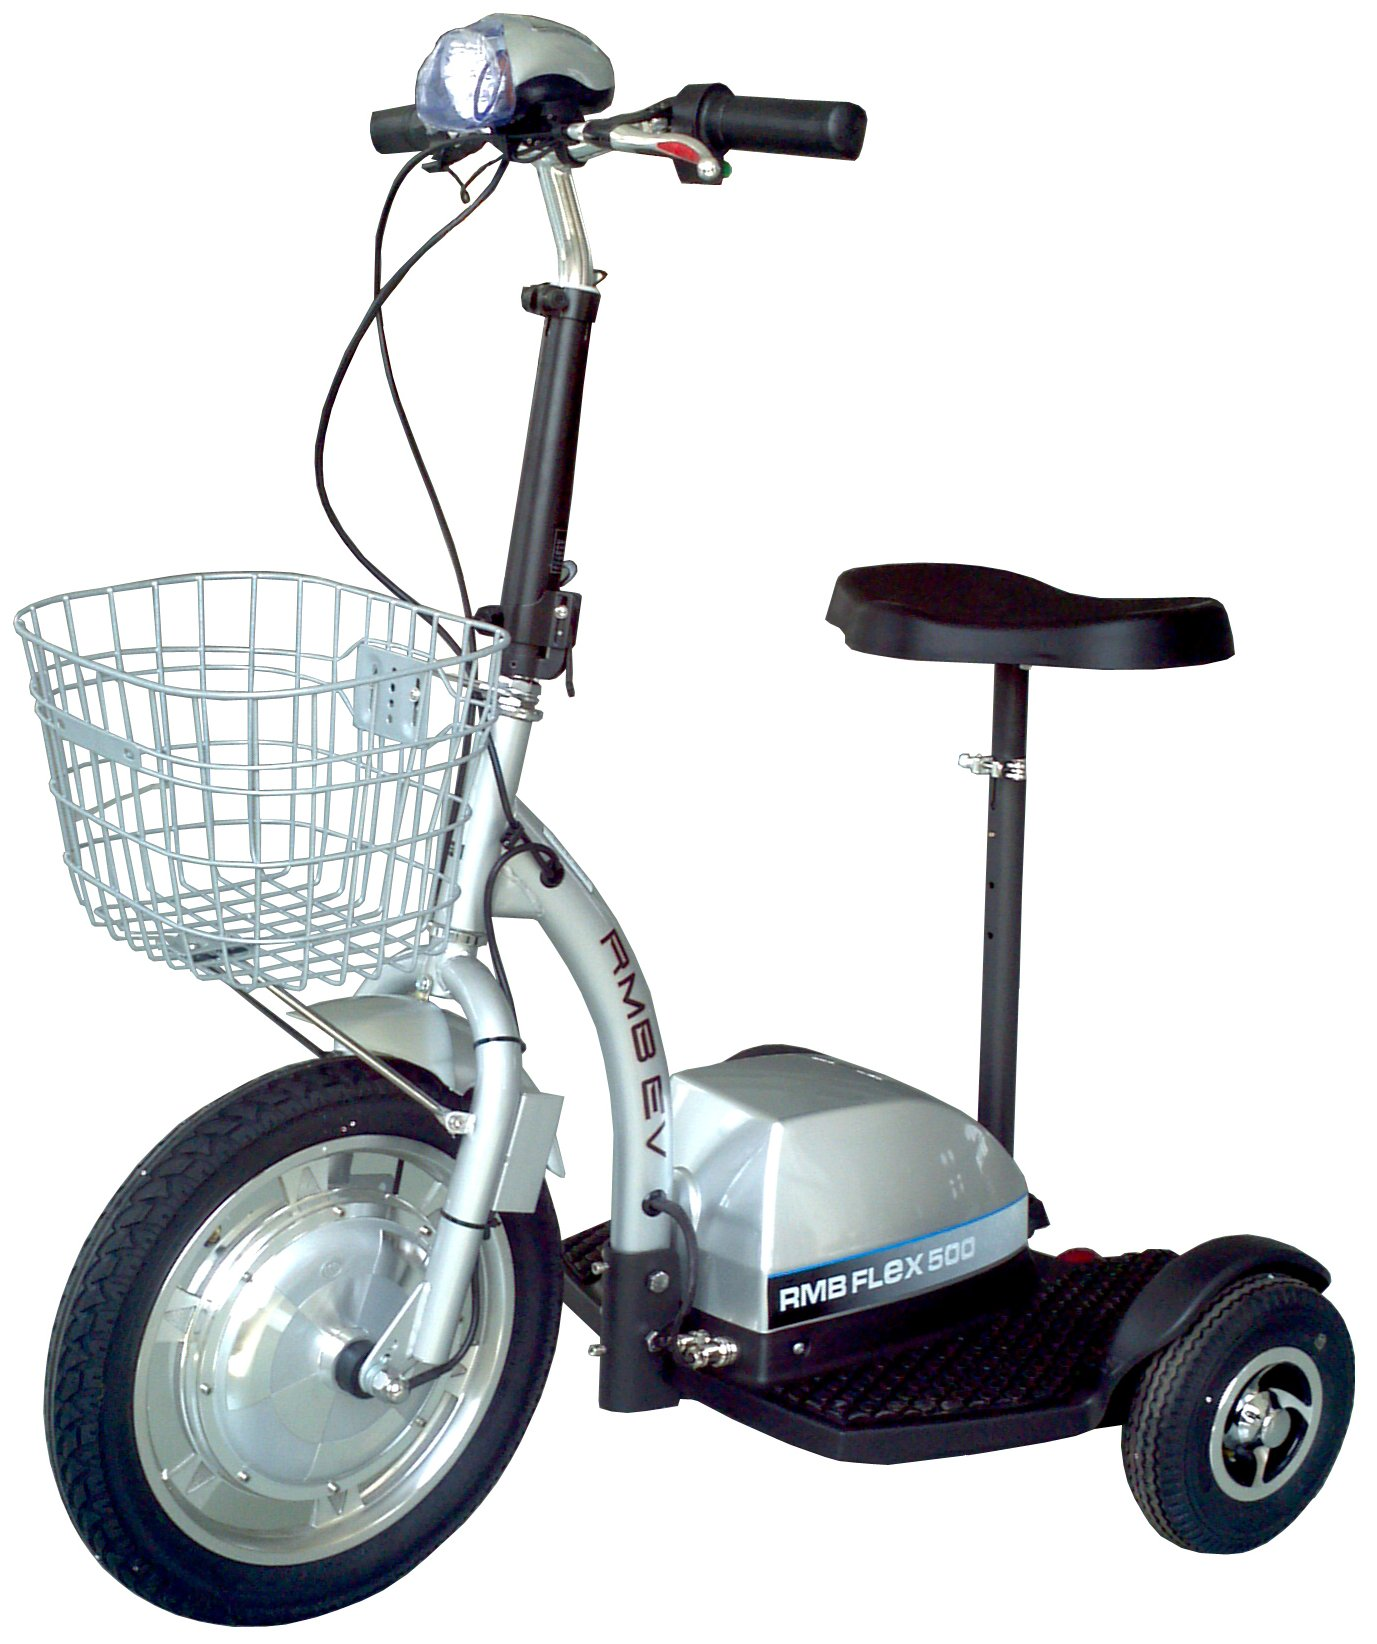 rmb flex 48v 500w personal transportation 3 wheel electric